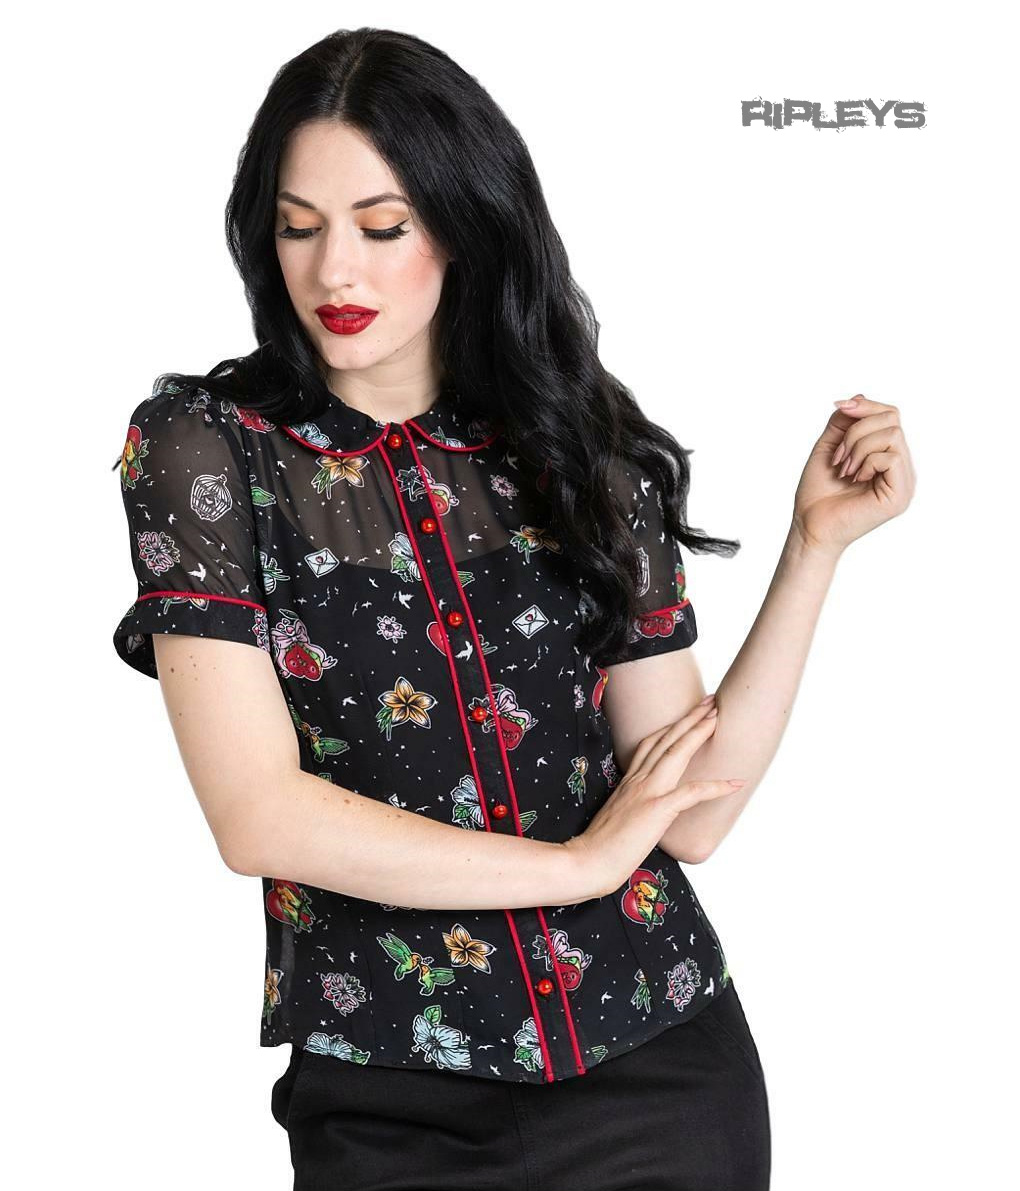 Hell-Bunny-Shirt-Top-Black-LOVEBIRD-Blouse-Retro-Vintage-Flowers-All-Sizes thumbnail 26